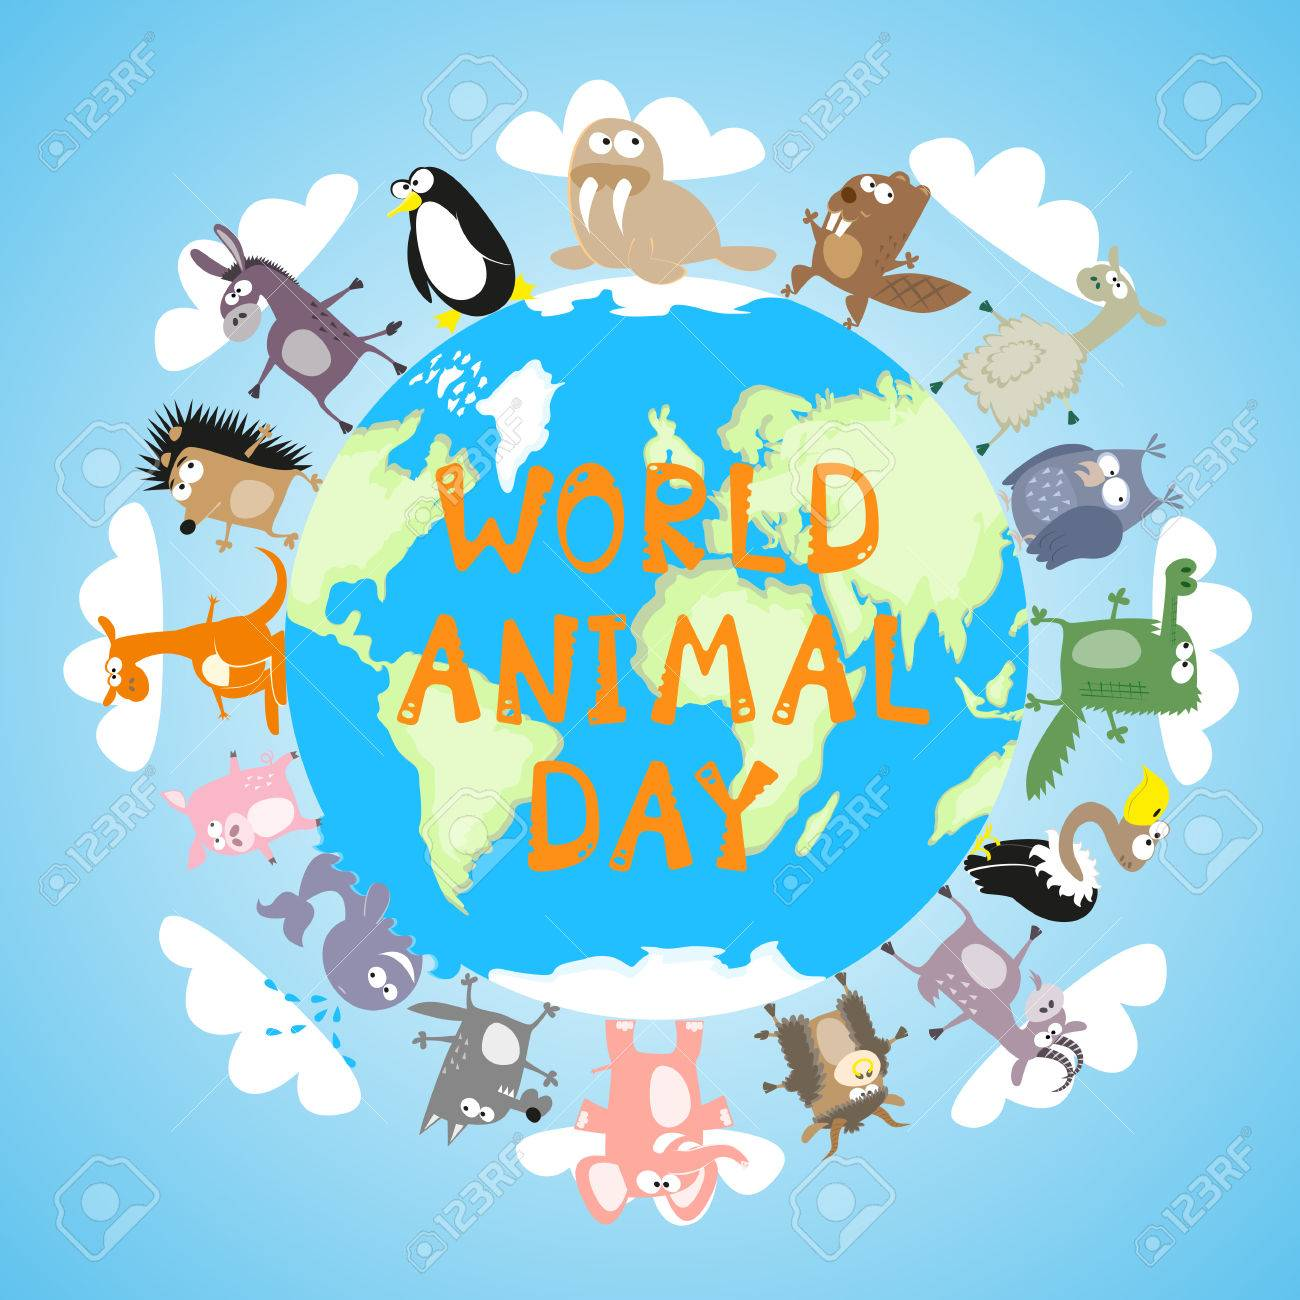 Image result for world animal day images